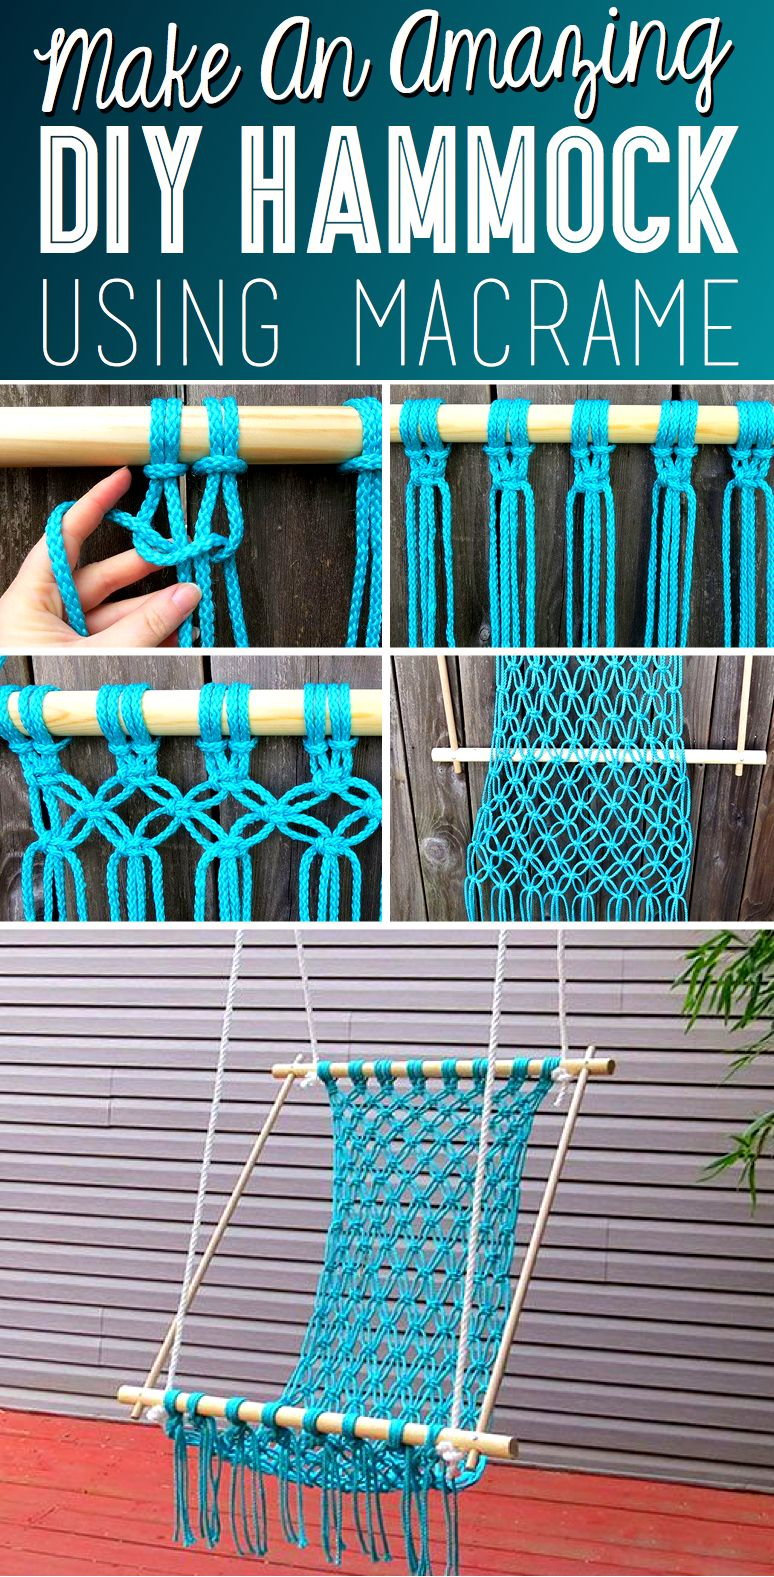 How to make a macrame hammock diy hammock craft and paracord